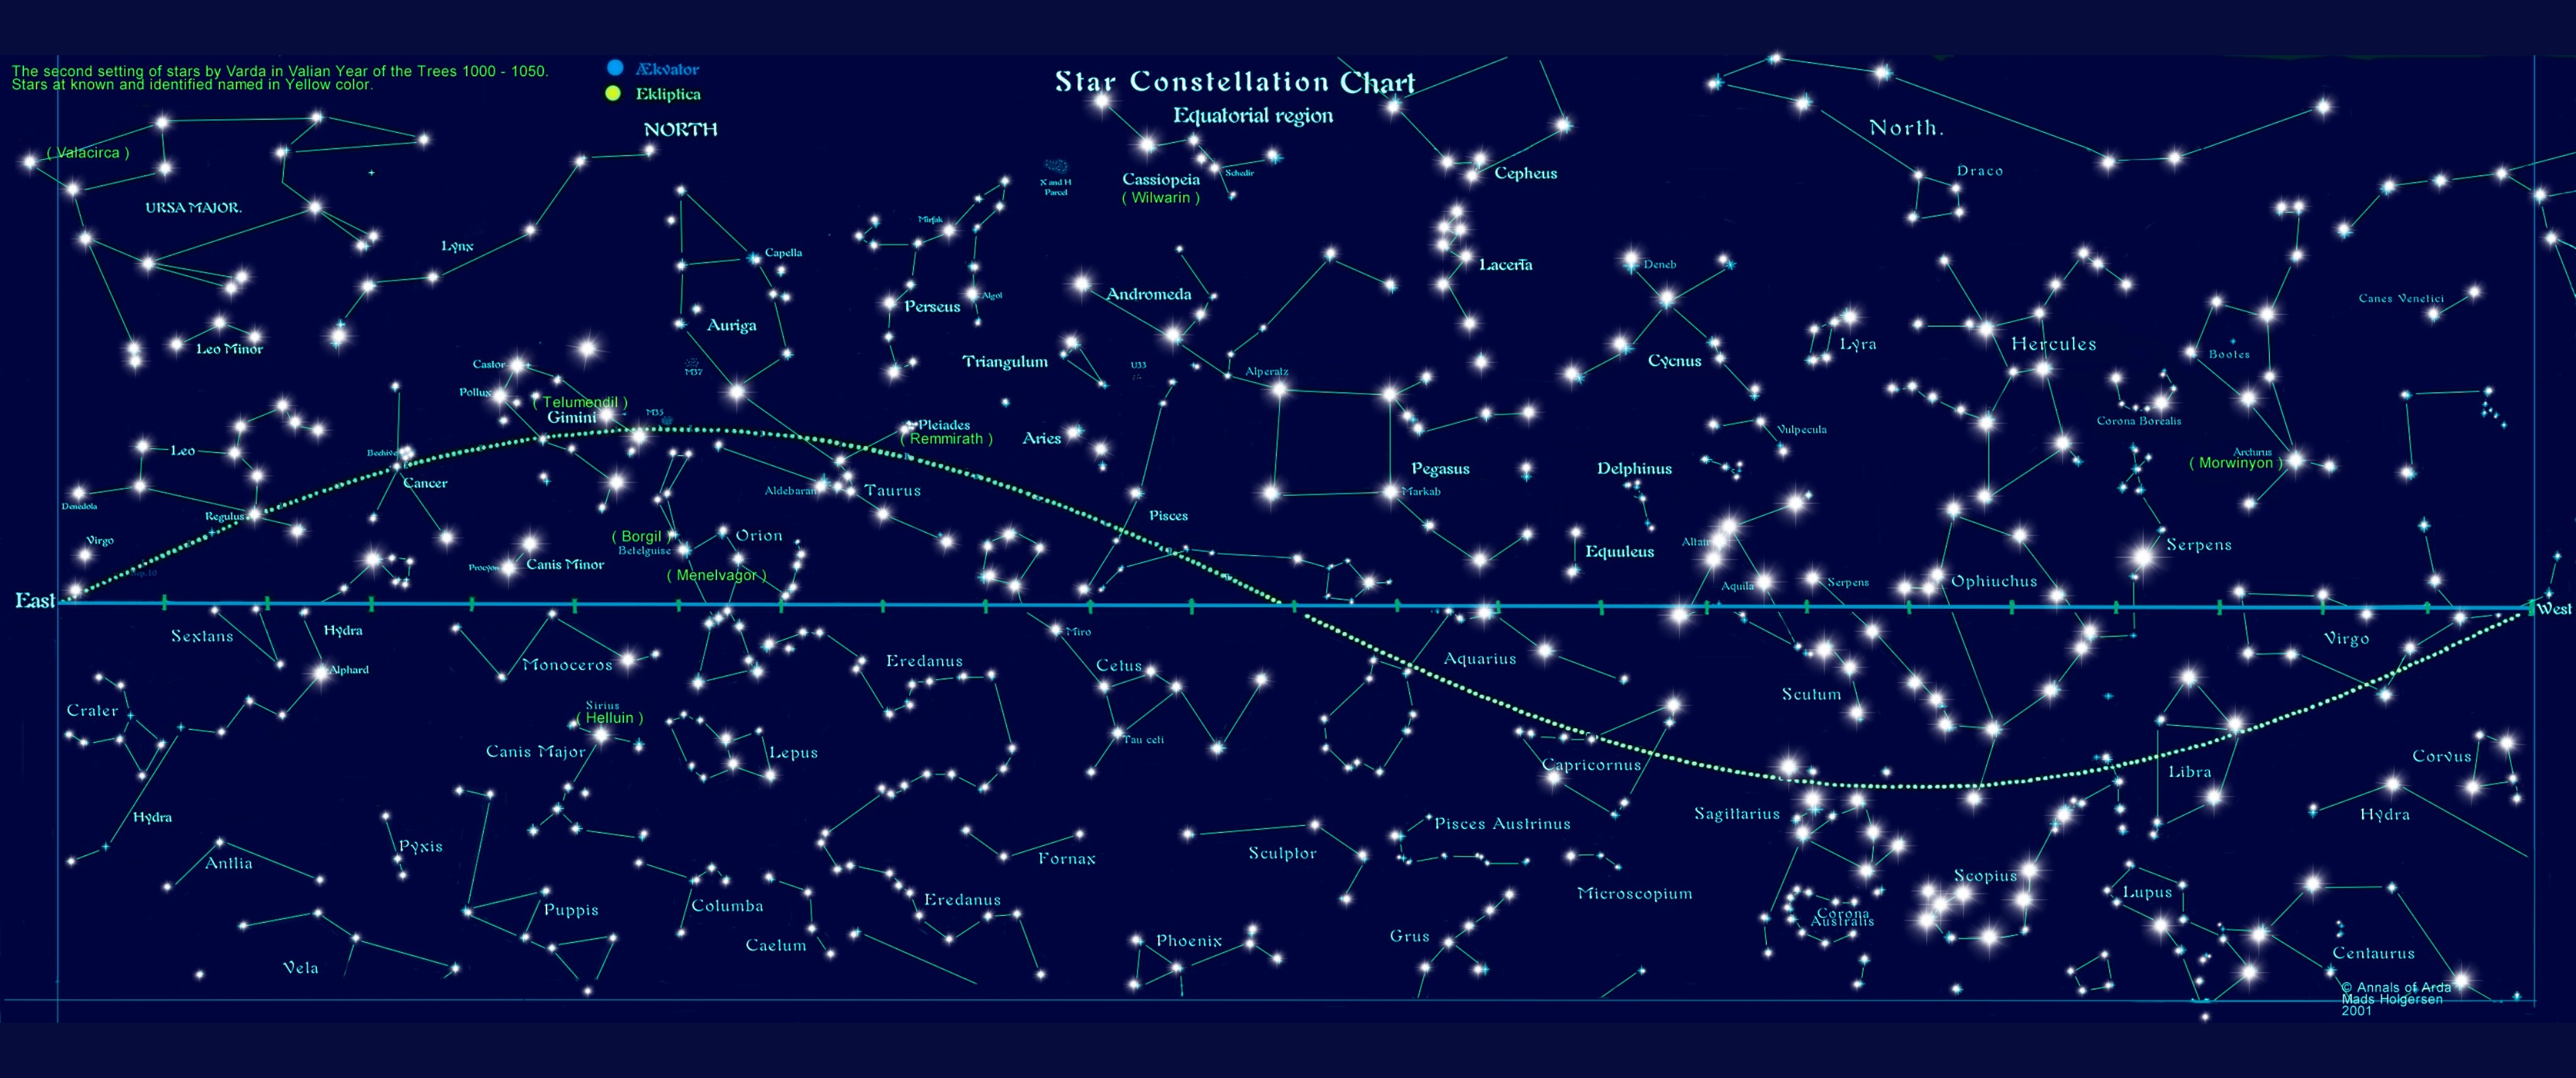 I Found A Neat Picture About 88 Constellations